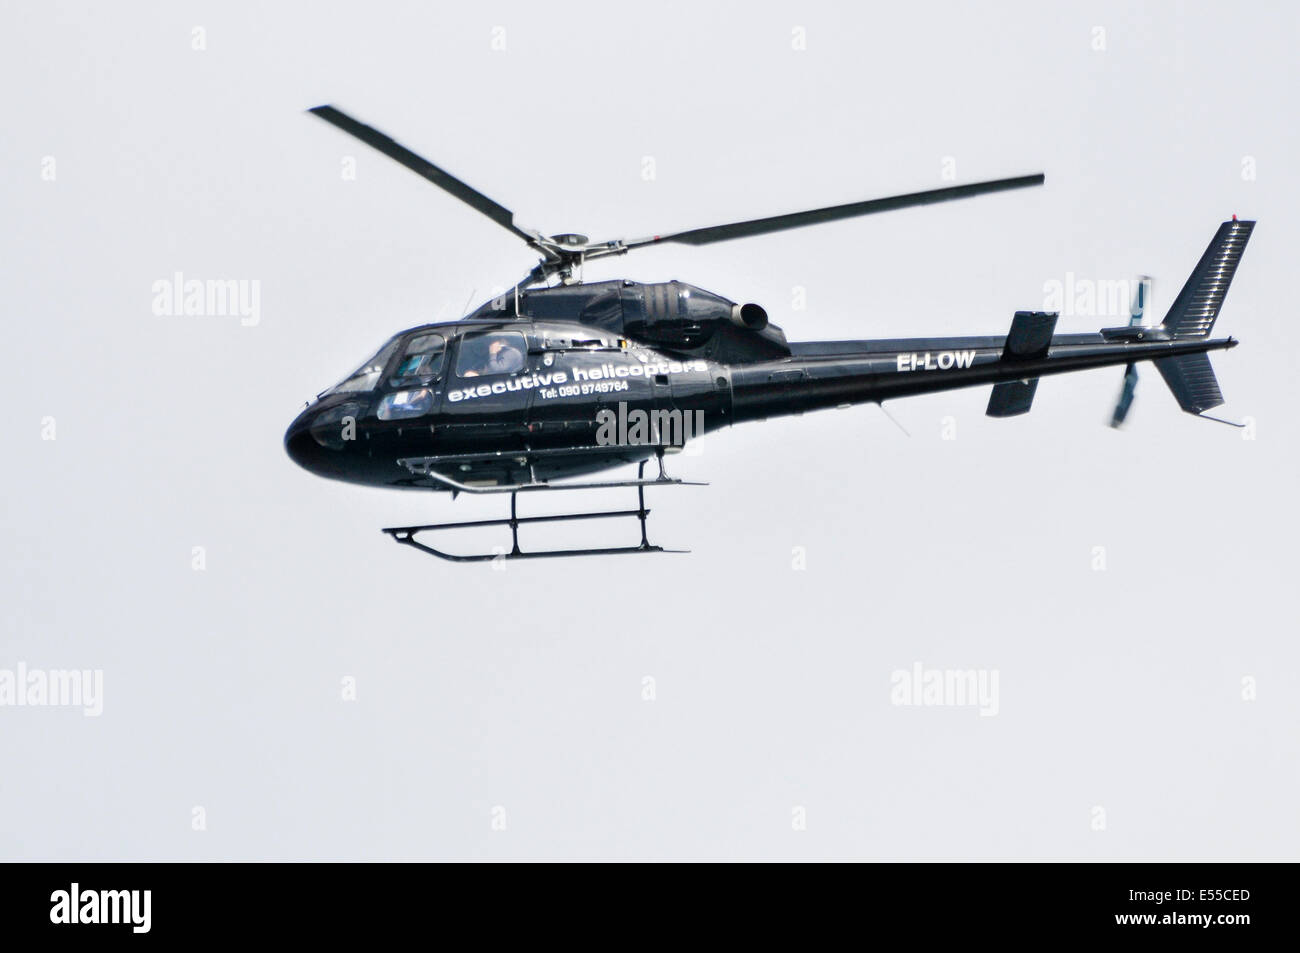 Executive Helicopter Maintenance Ltd Eurocopter AS355N Squirrel helicopter EI-LOW, formerly LN-OGP, (2000) at the - Stock Image